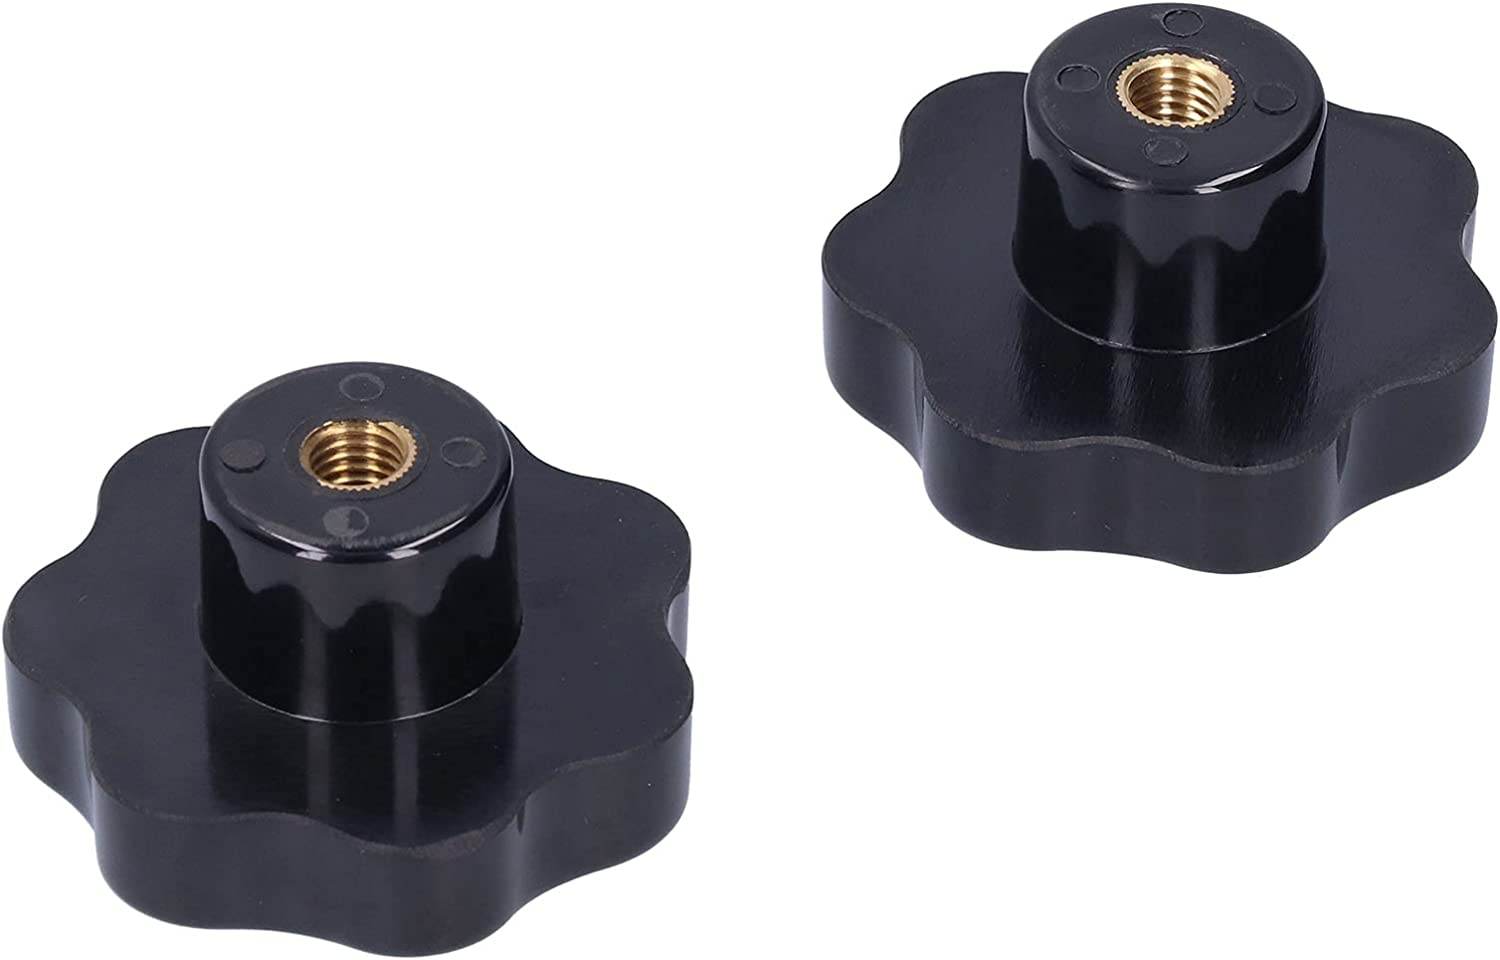 Knob Nuts Star Max 43% OFF Grip Excellent New item Plastic Handle Ma Effect for